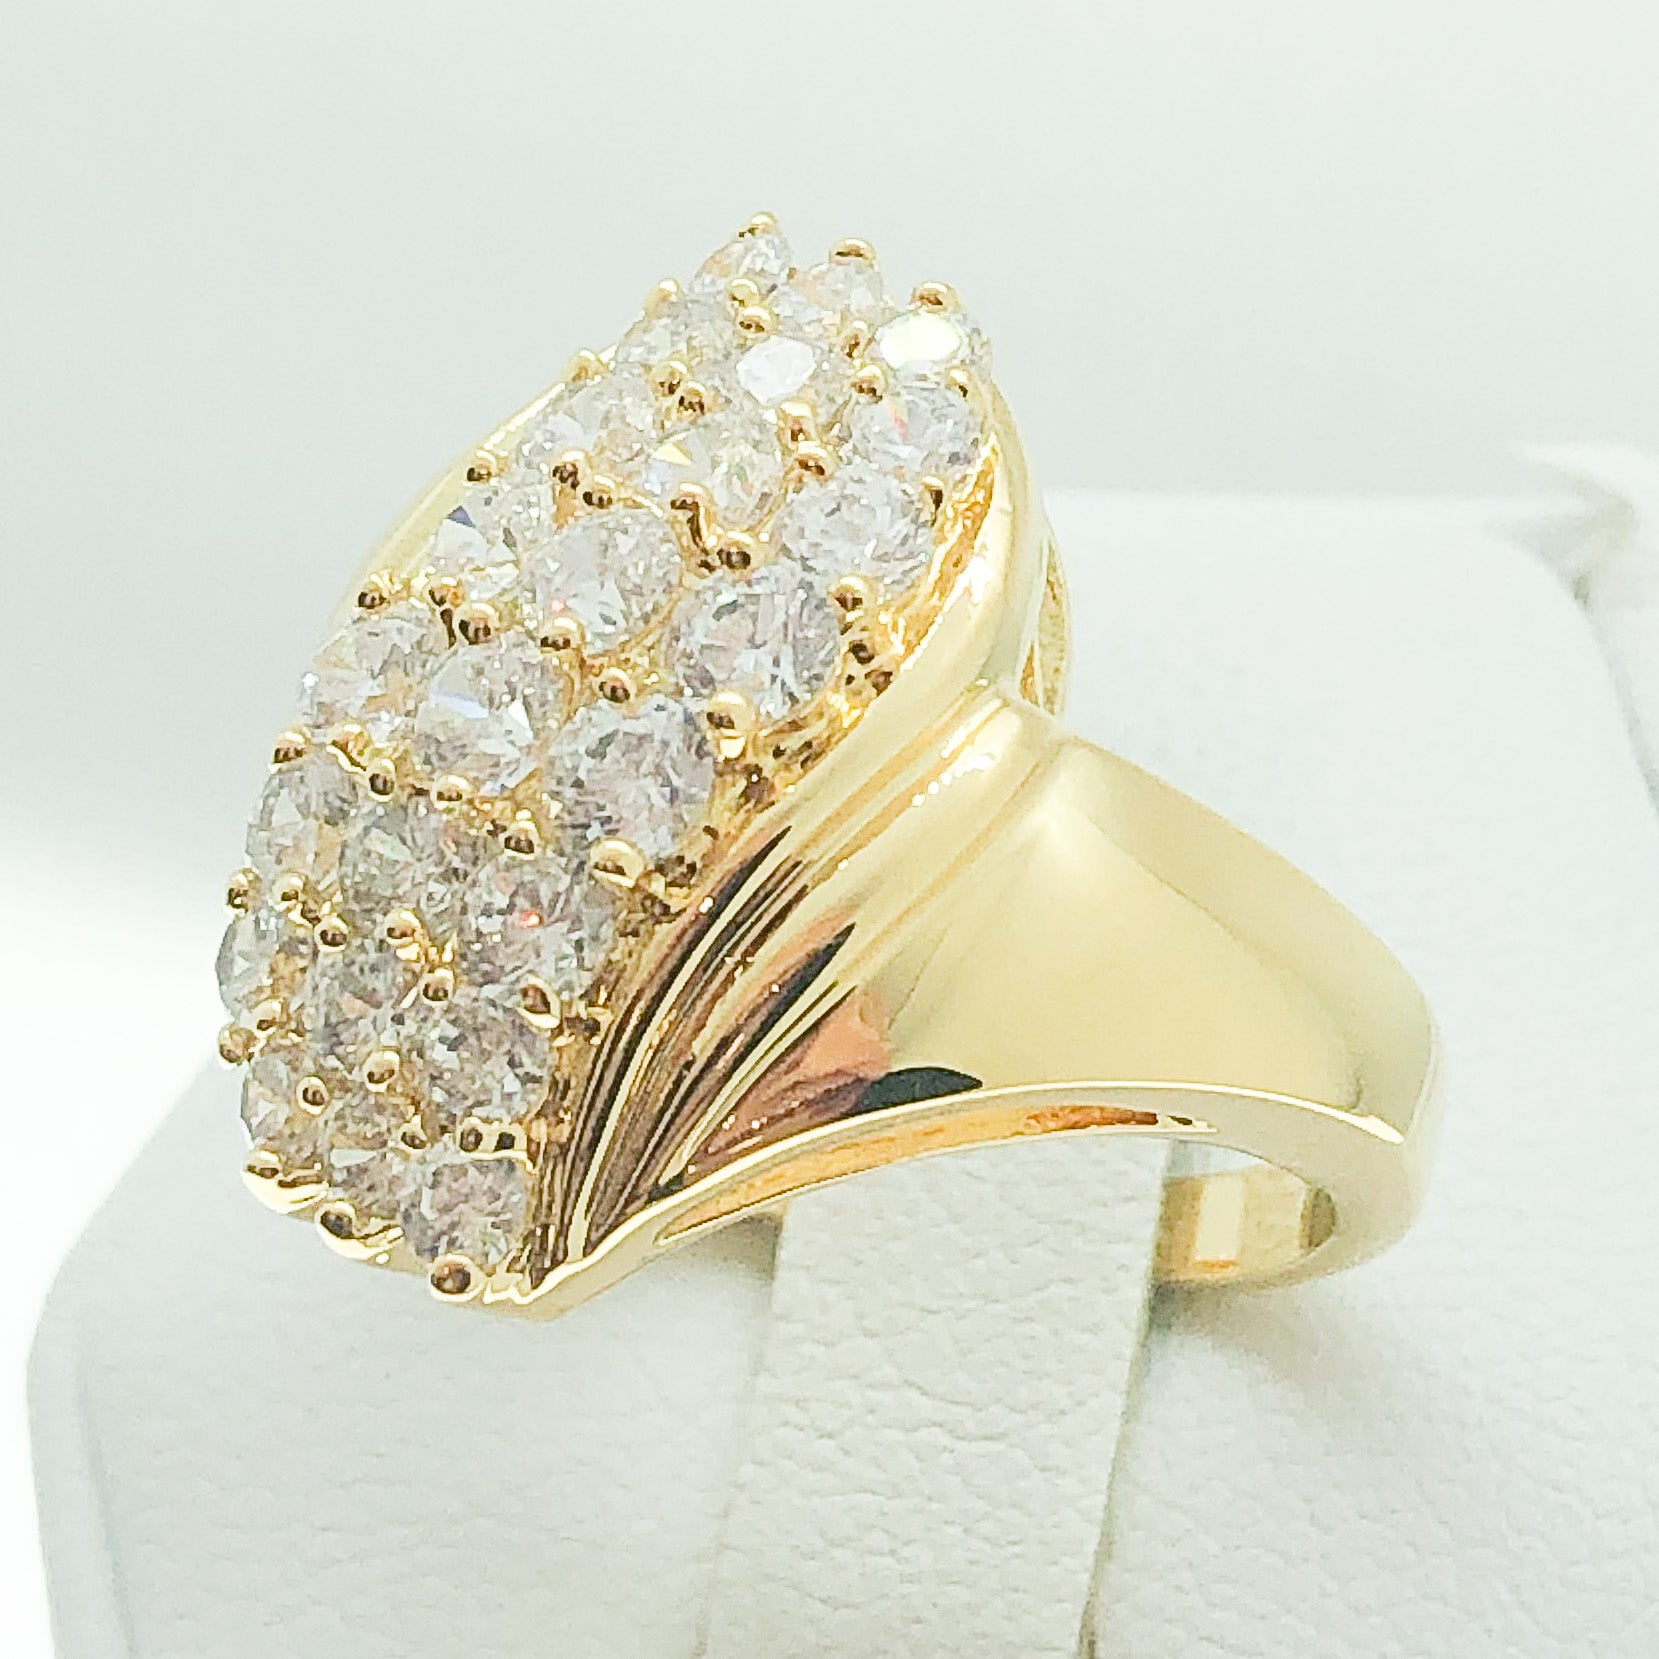 ID:R0505 Women Fashion Jewelry 18K Yellow Gold GF Lovely Promise Anniversary Birthday Diamonique Cluster Cocktail Ring